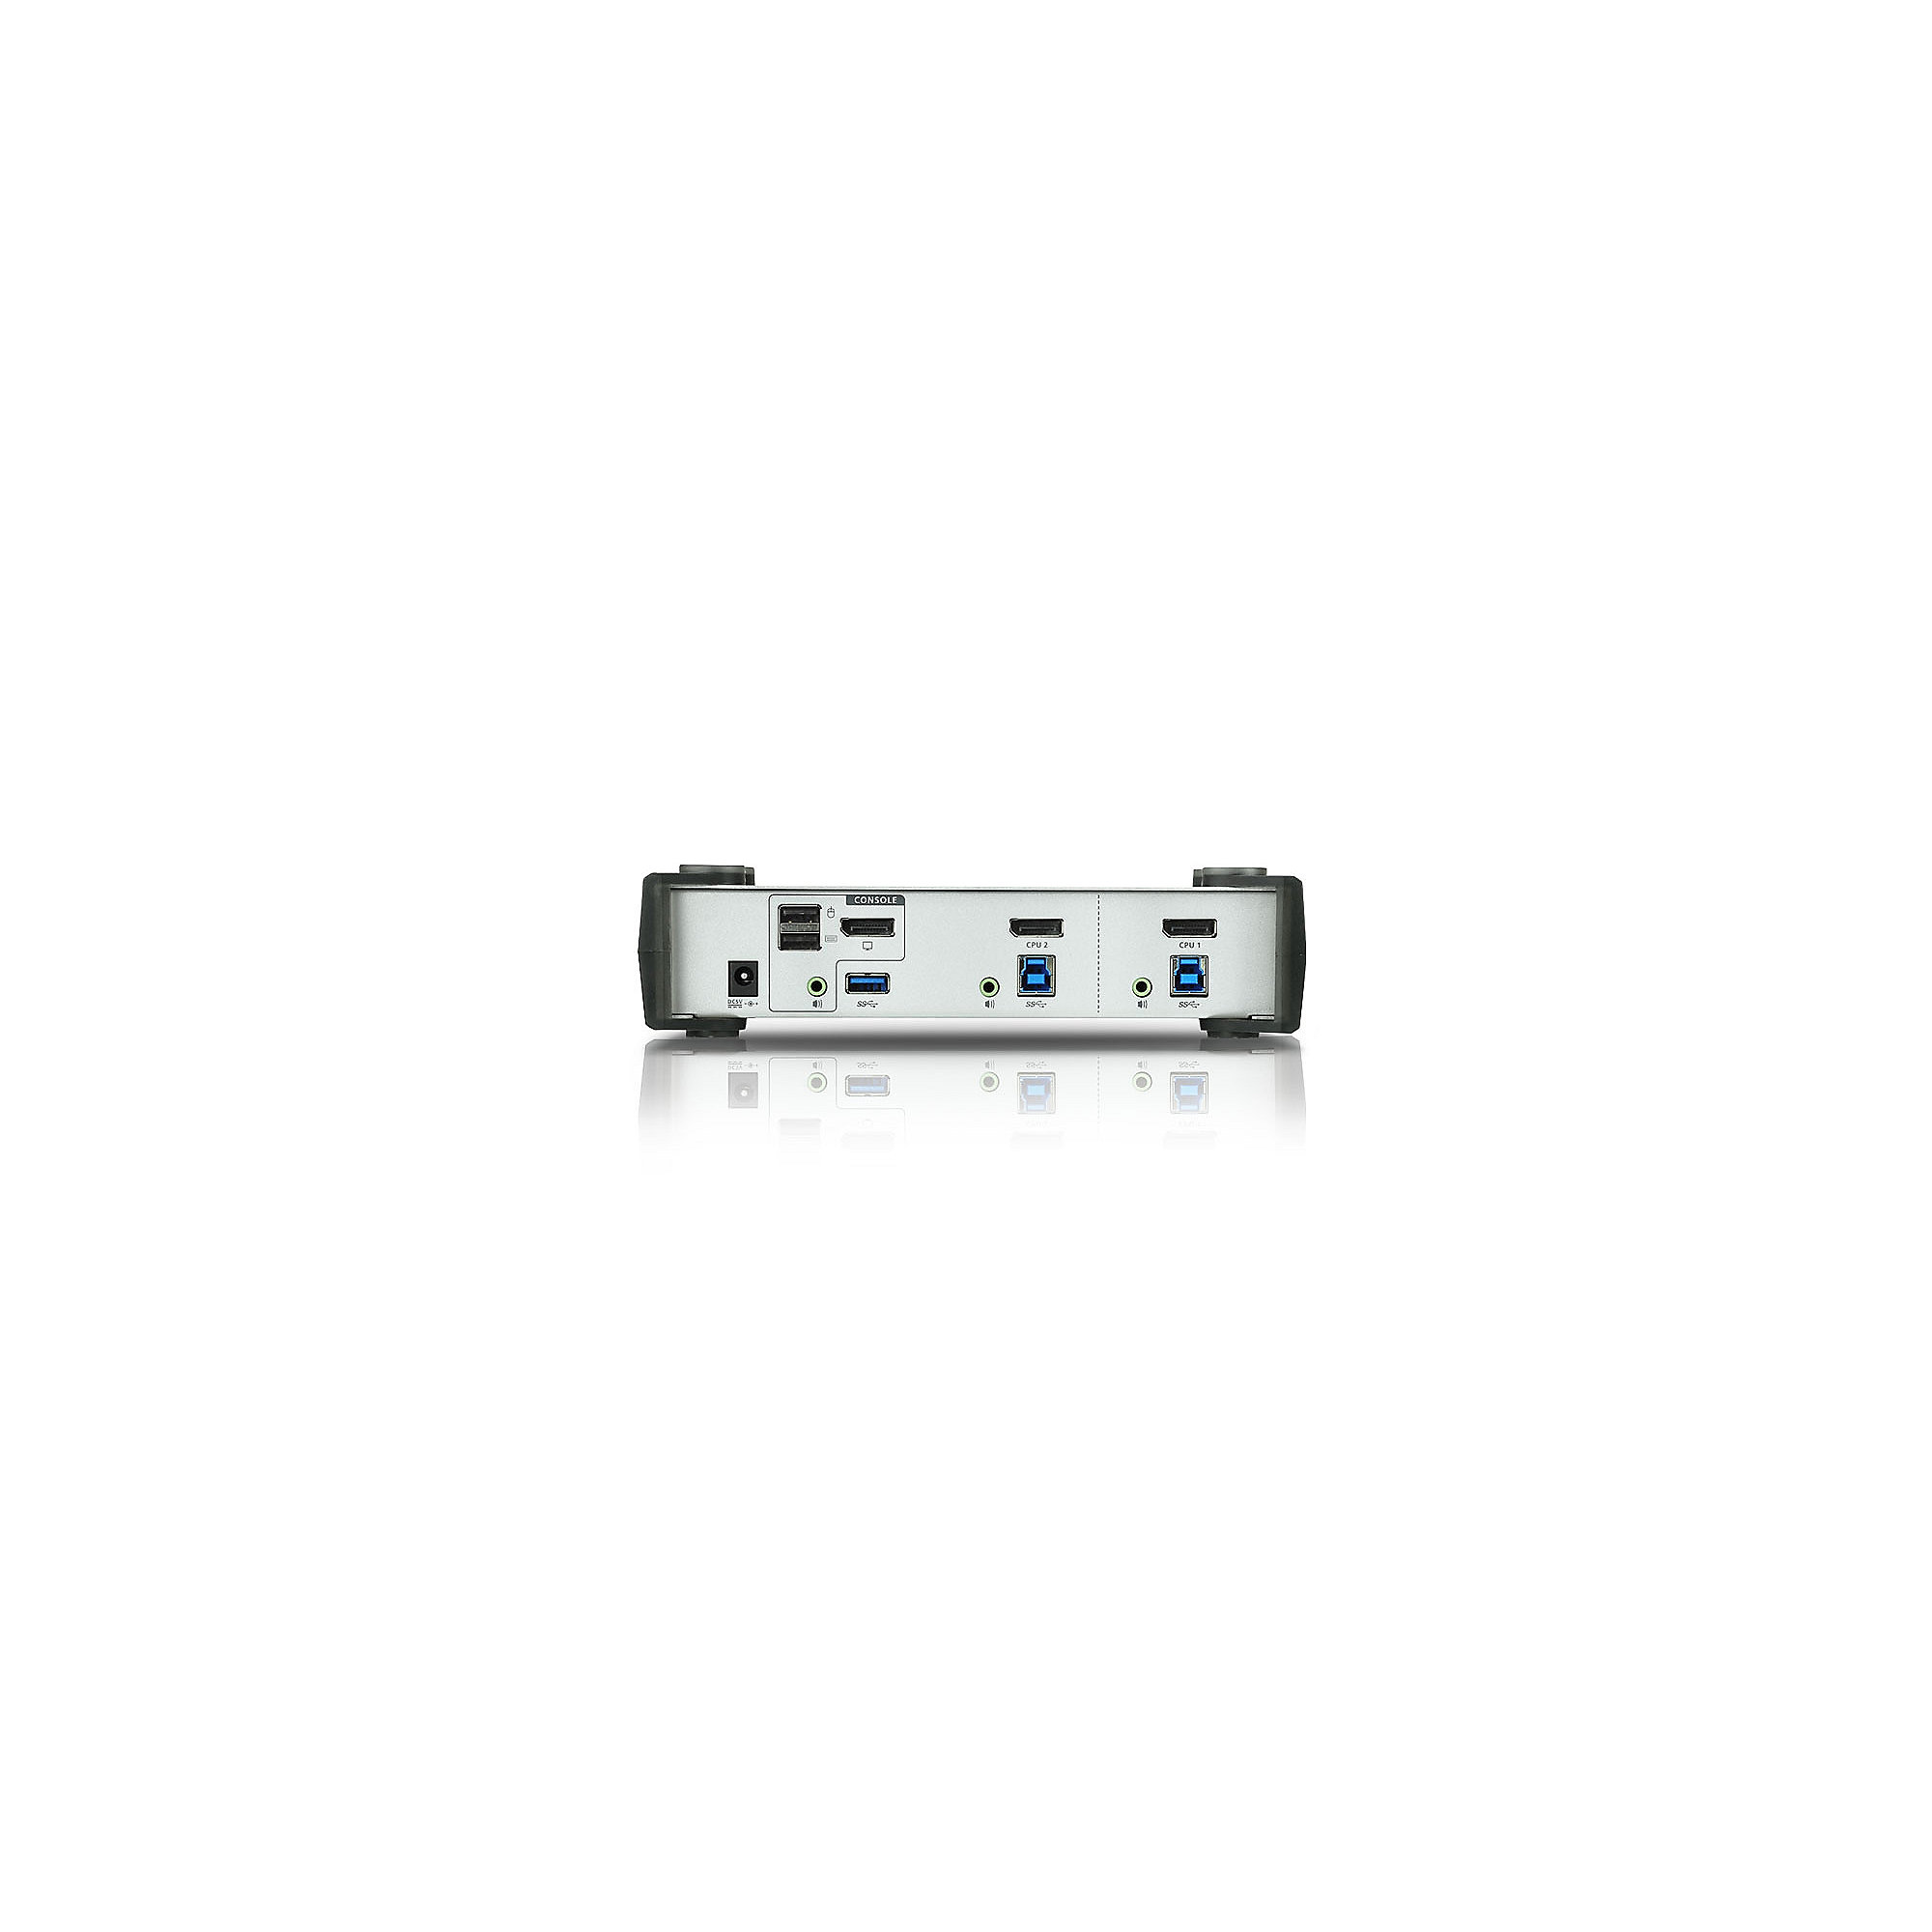 Aten CS1912 2-Port KVMP Switch DP/Audio/USB3.0